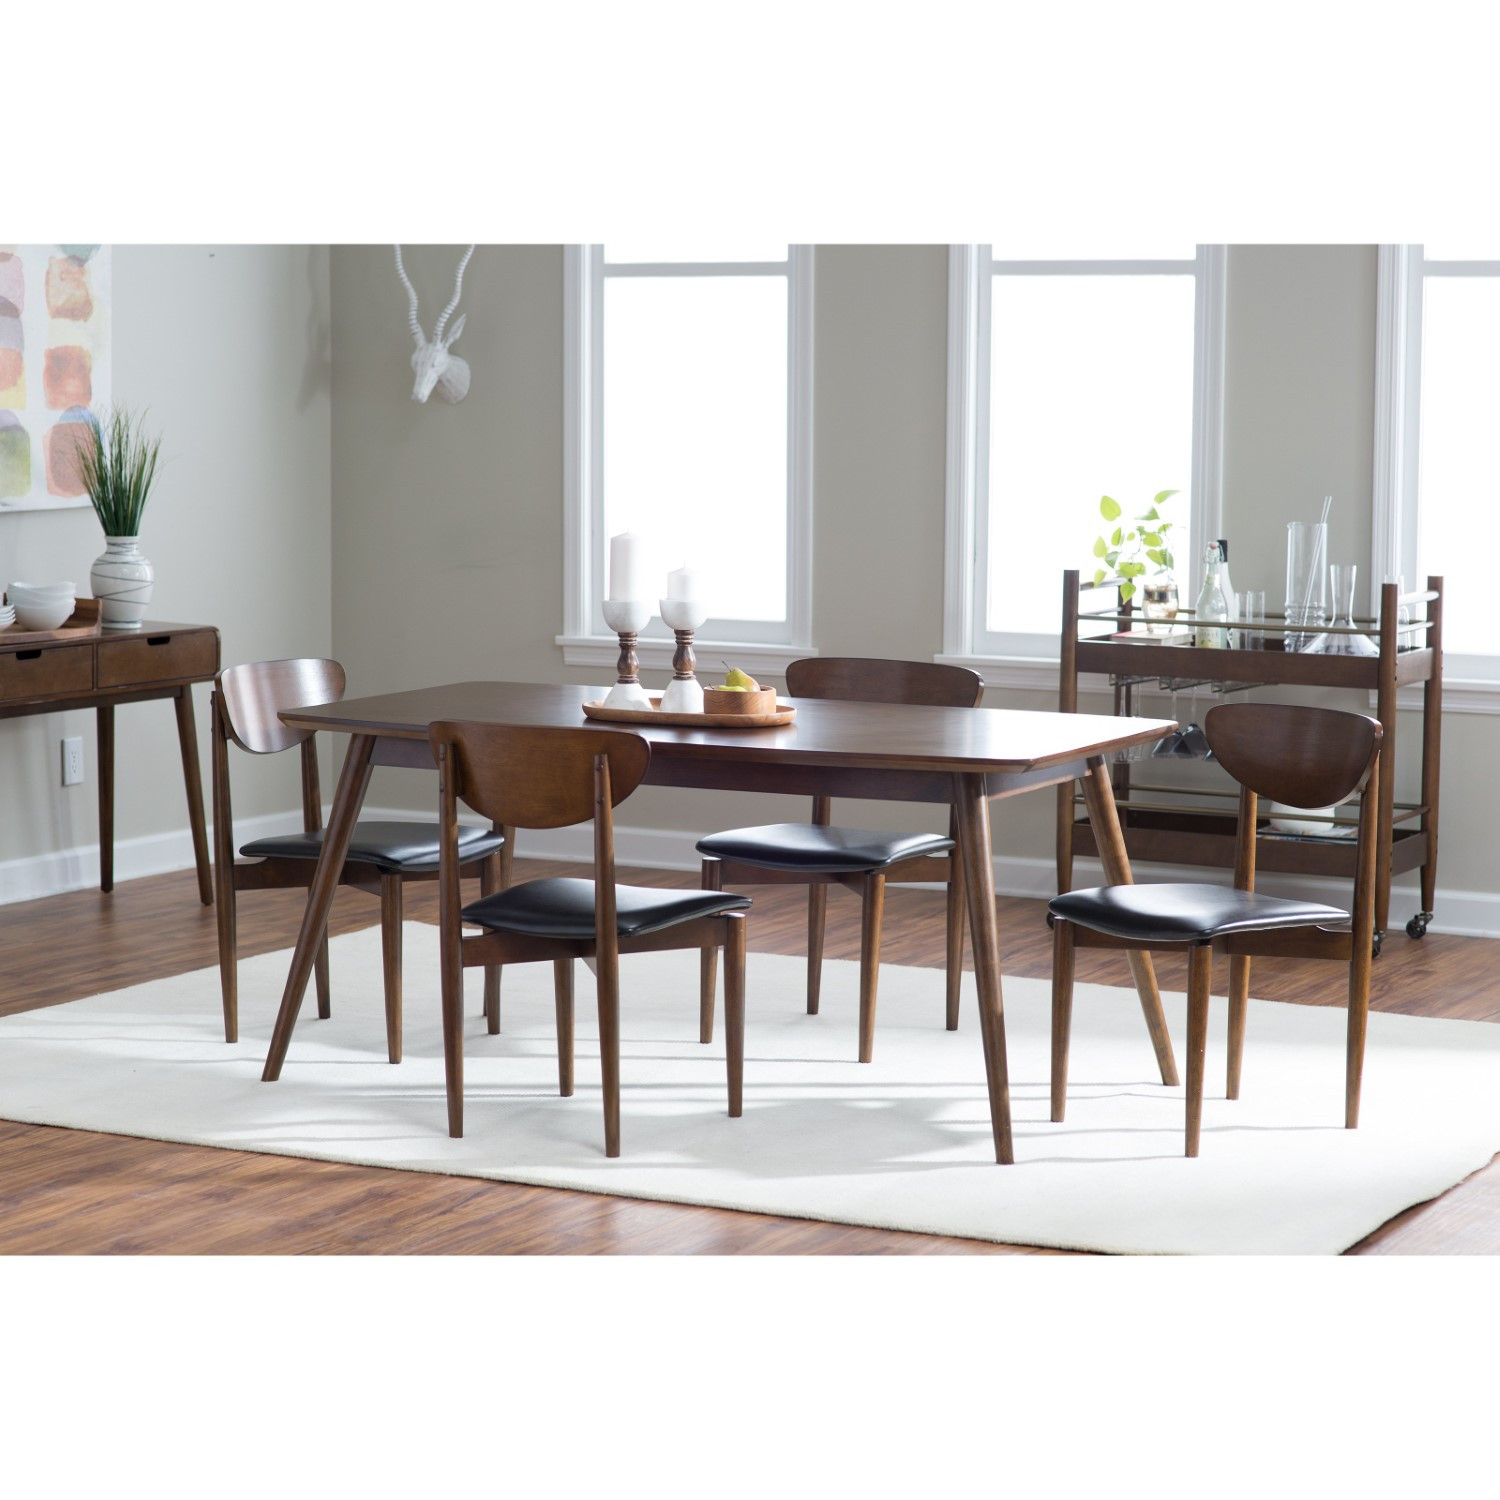 Best ideas about Mid Century Modern Dining Table . Save or Pin Belham Living Carter Mid Century Modern Dining Table Now.